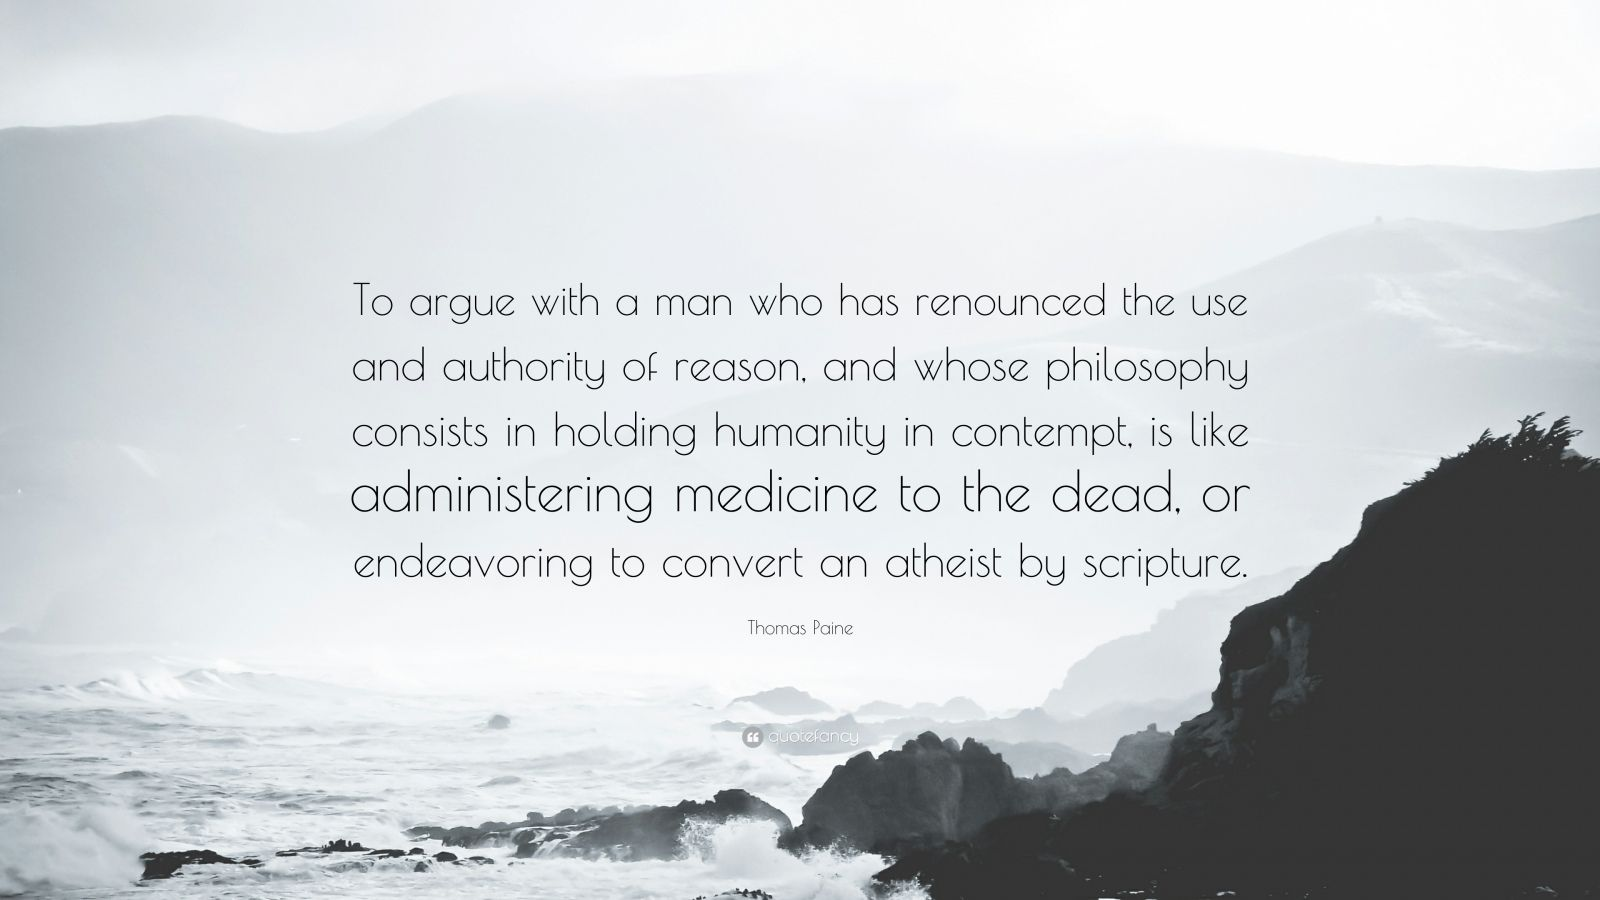 """Thomas Paine Quote: """"To argue with a man who has renounced the use and authority of reason, and whose philosophy consists in holding humanity in contempt, is like administering medicine to the dead, or endeavoring to convert an atheist by scripture."""""""